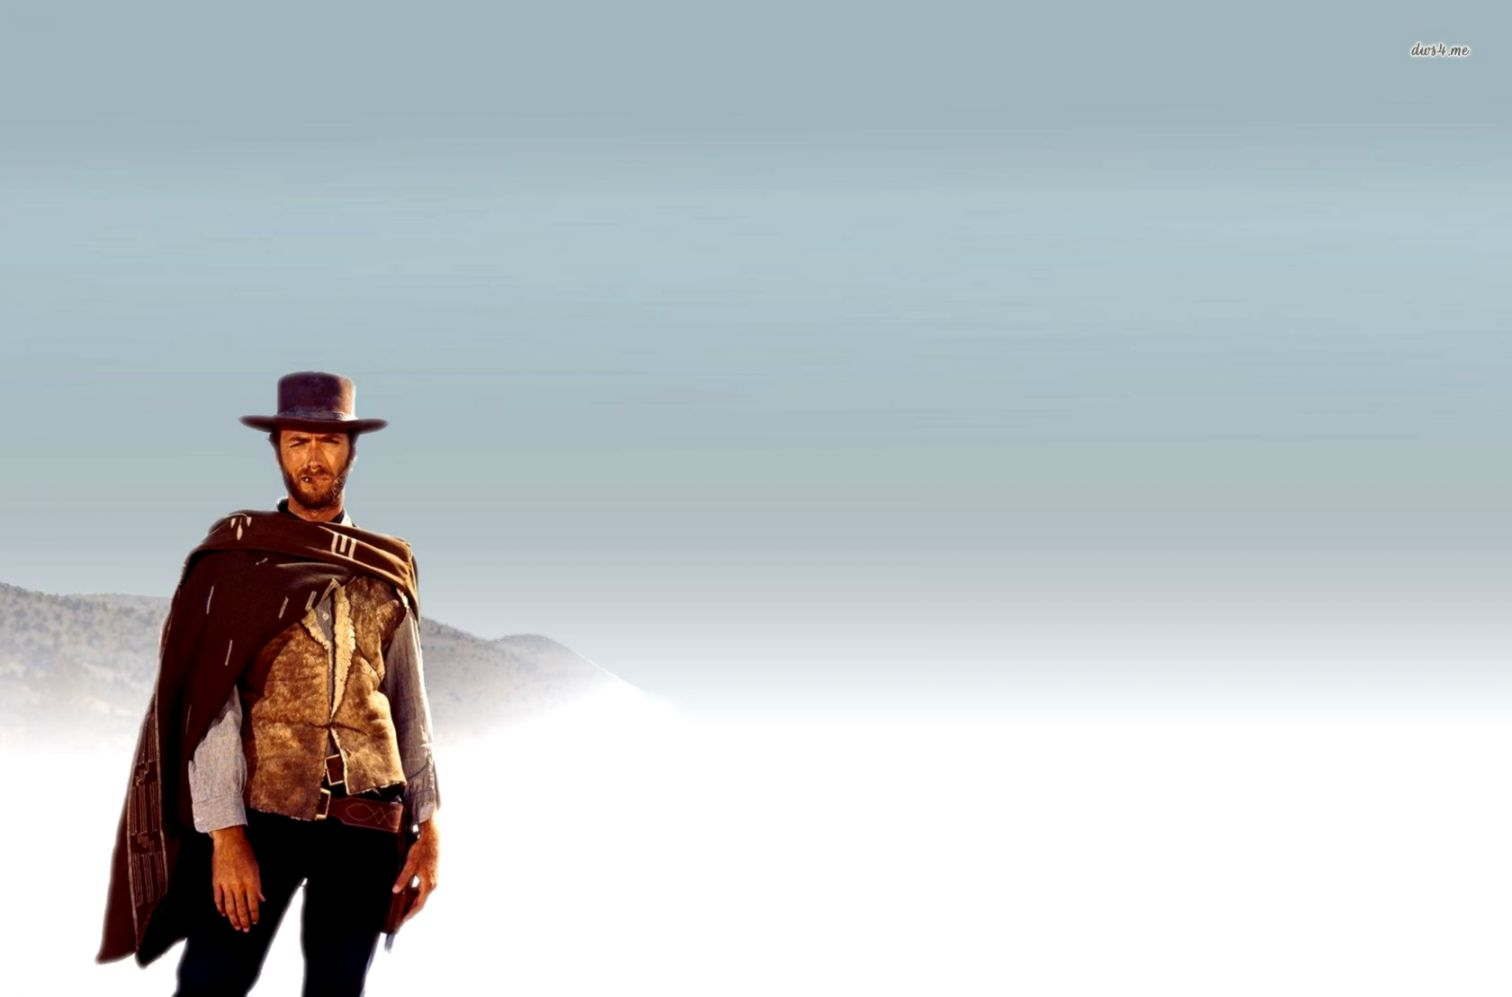 1512x997 - Clint Eastwood Wallpapers 27